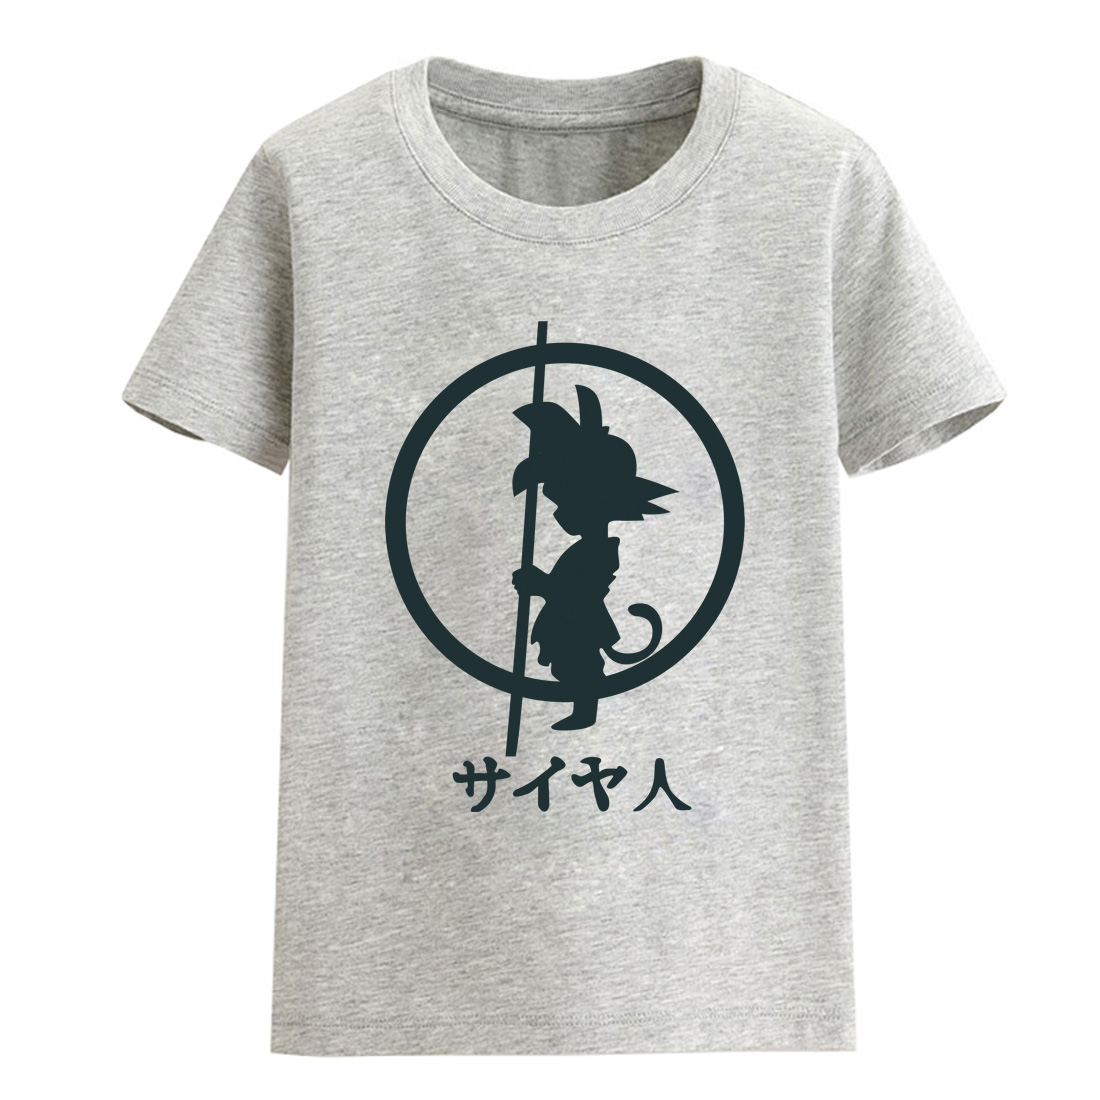 Hot Sale Anime Dragon Ball Z Goku Print 2018 Summer Child T-shirts For Girls Brand Clothing Cotton T-shirt For Baby Boy Clothes